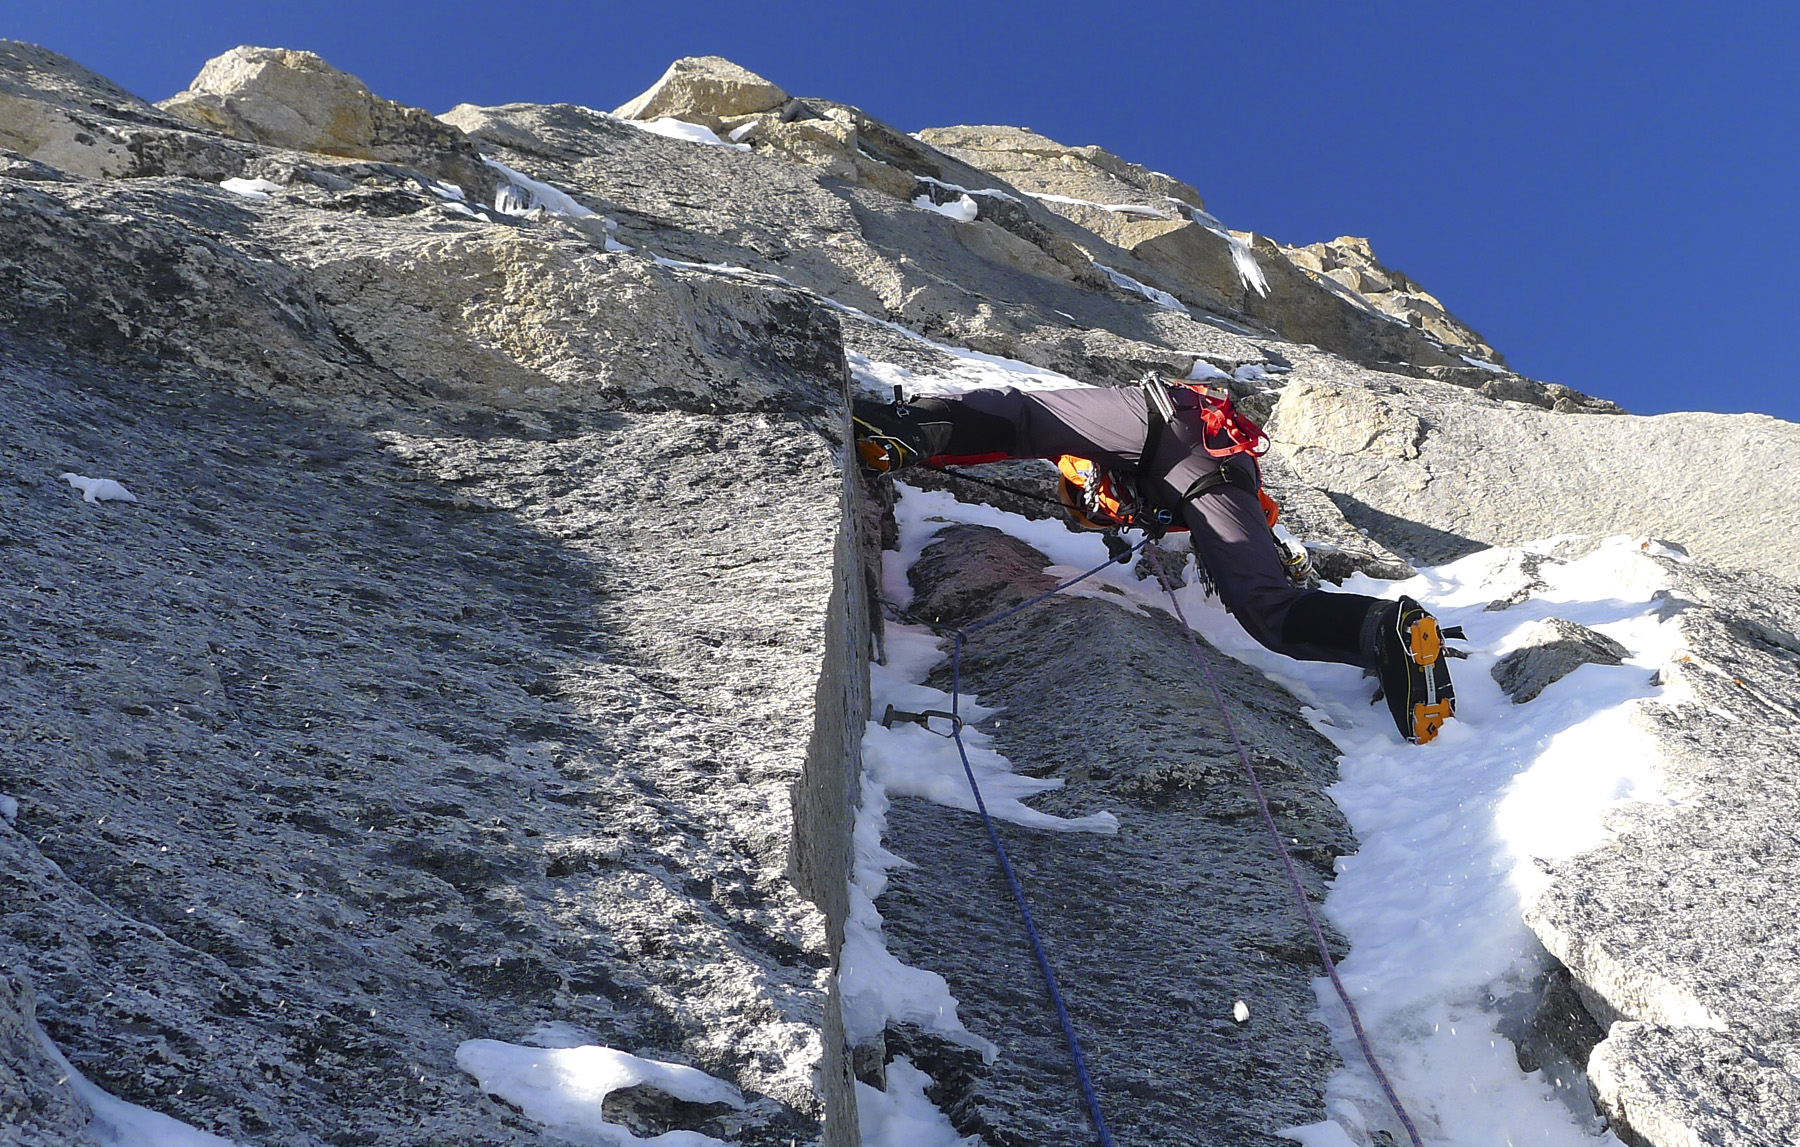 Paul Ramsden works through steep granite on the lower third of the Prow, five days out from base camp. Mick Fowler